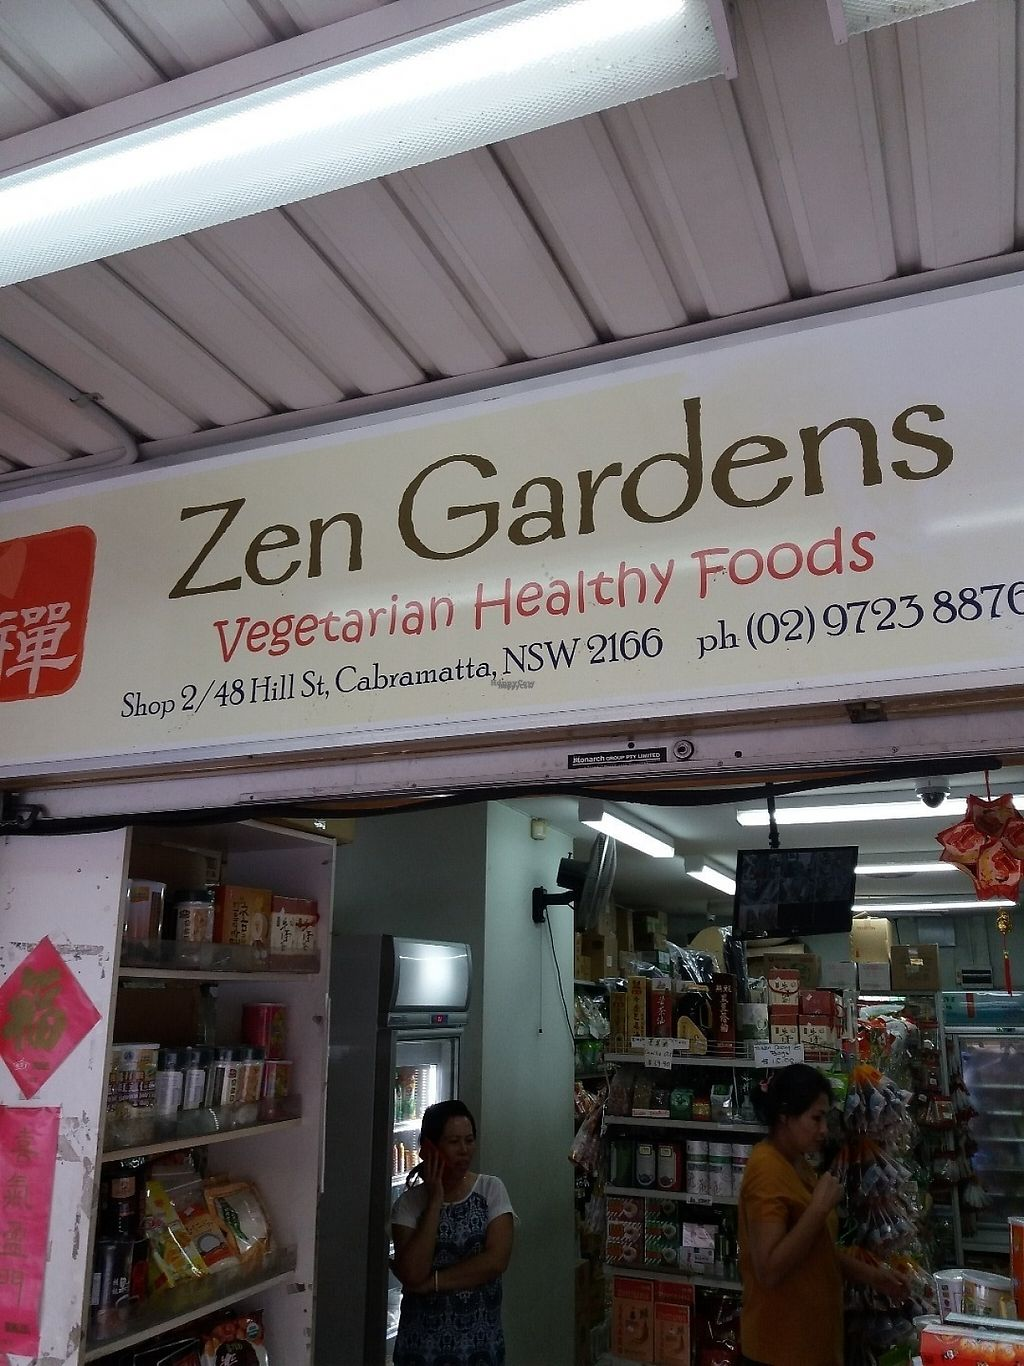 "Photo of Zen Gardens  by <a href=""/members/profile/veganvirtues"">veganvirtues</a> <br/>Entrance <br/> March 14, 2017  - <a href='/contact/abuse/image/16707/236542'>Report</a>"